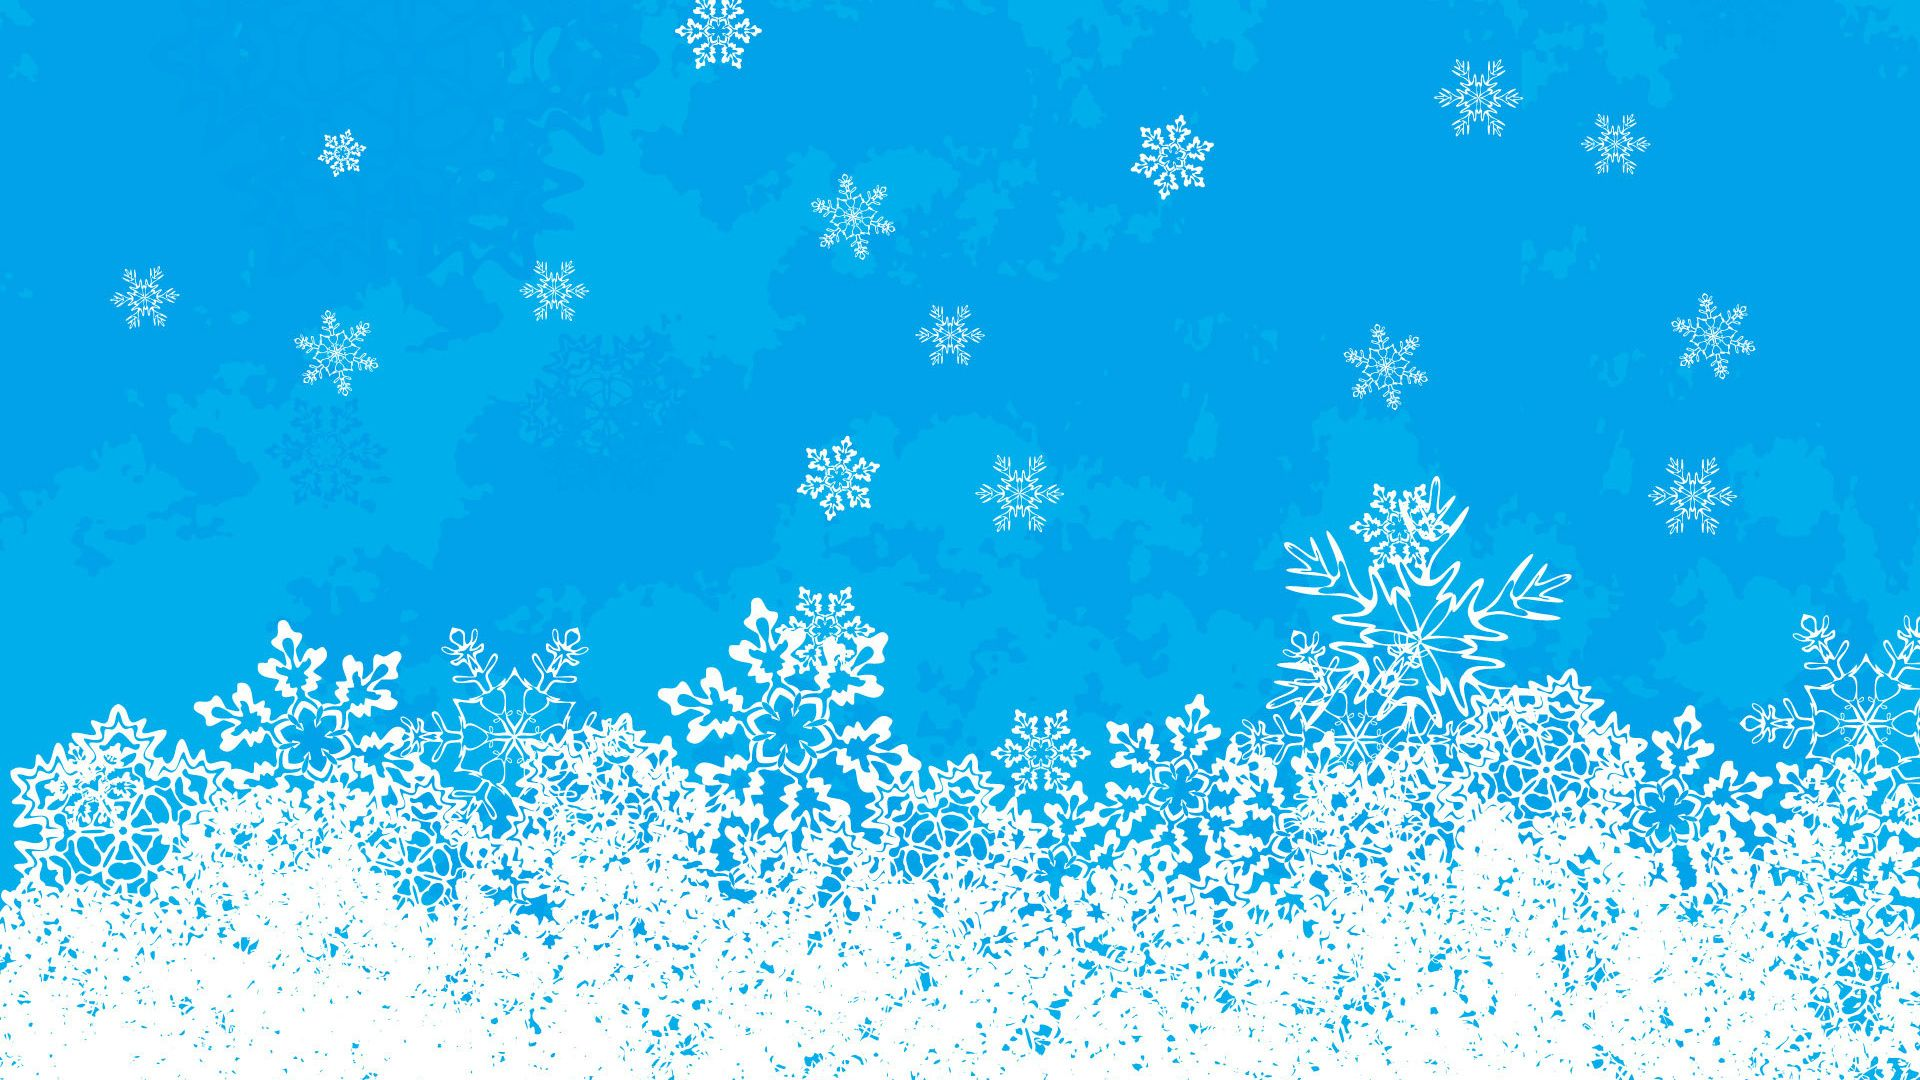 New Year With Snowflakes wallpaper download